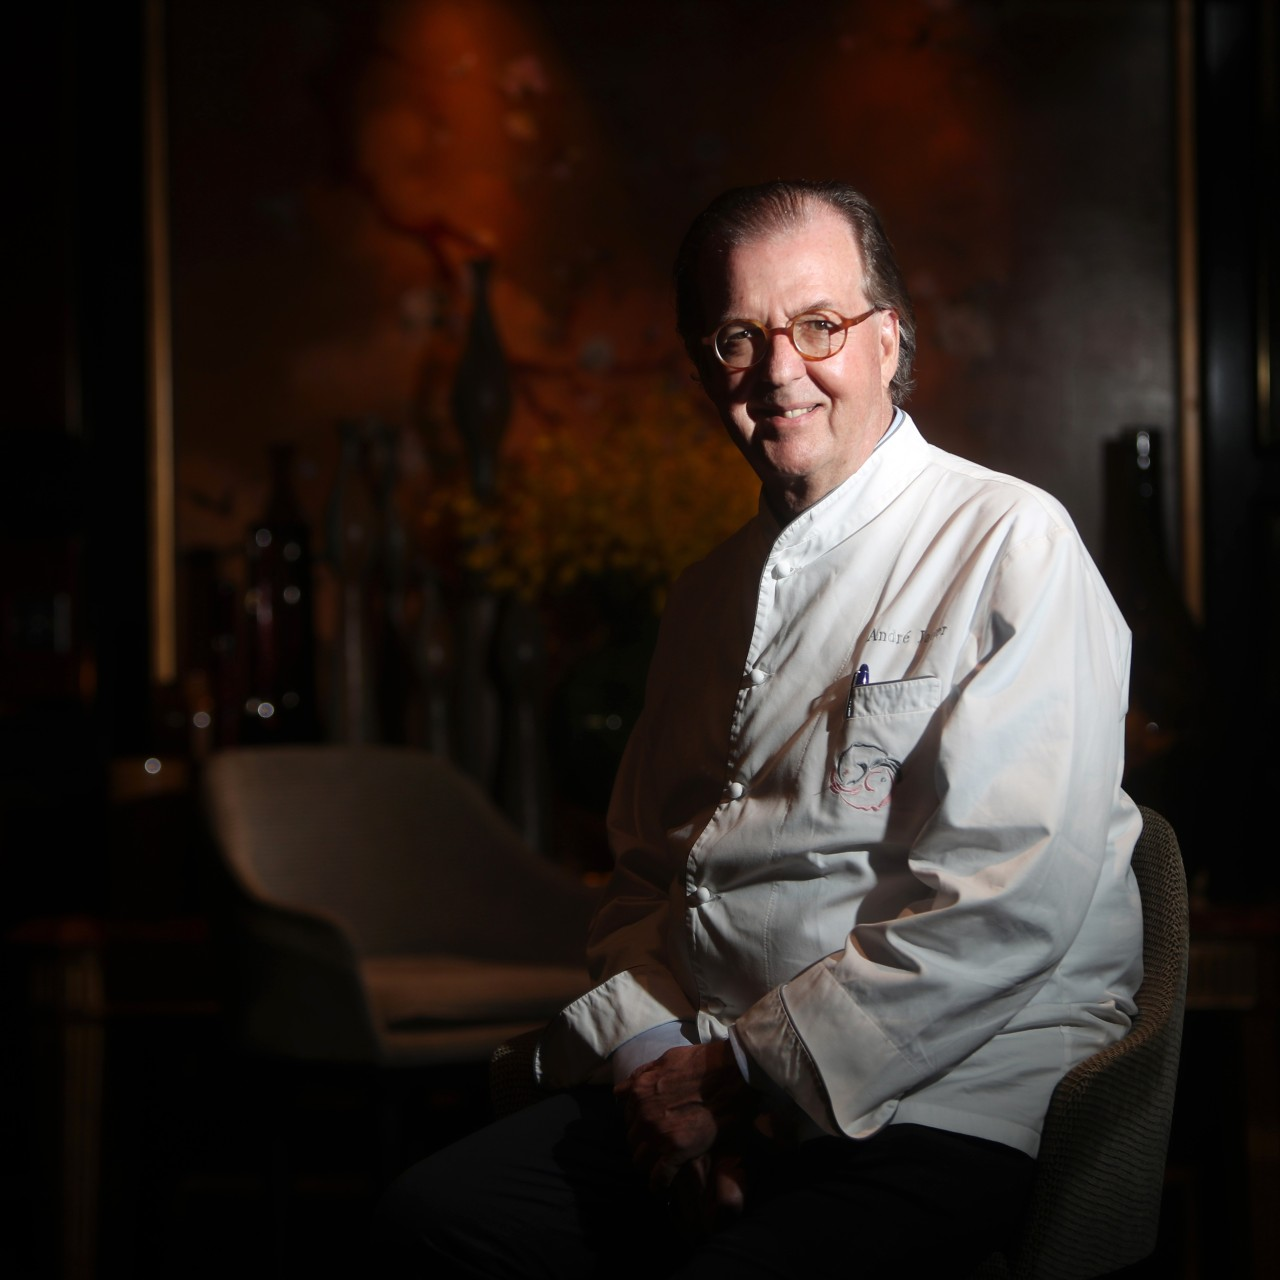 Swiss chef André Jaeger on his Hong Kong years and why he had to